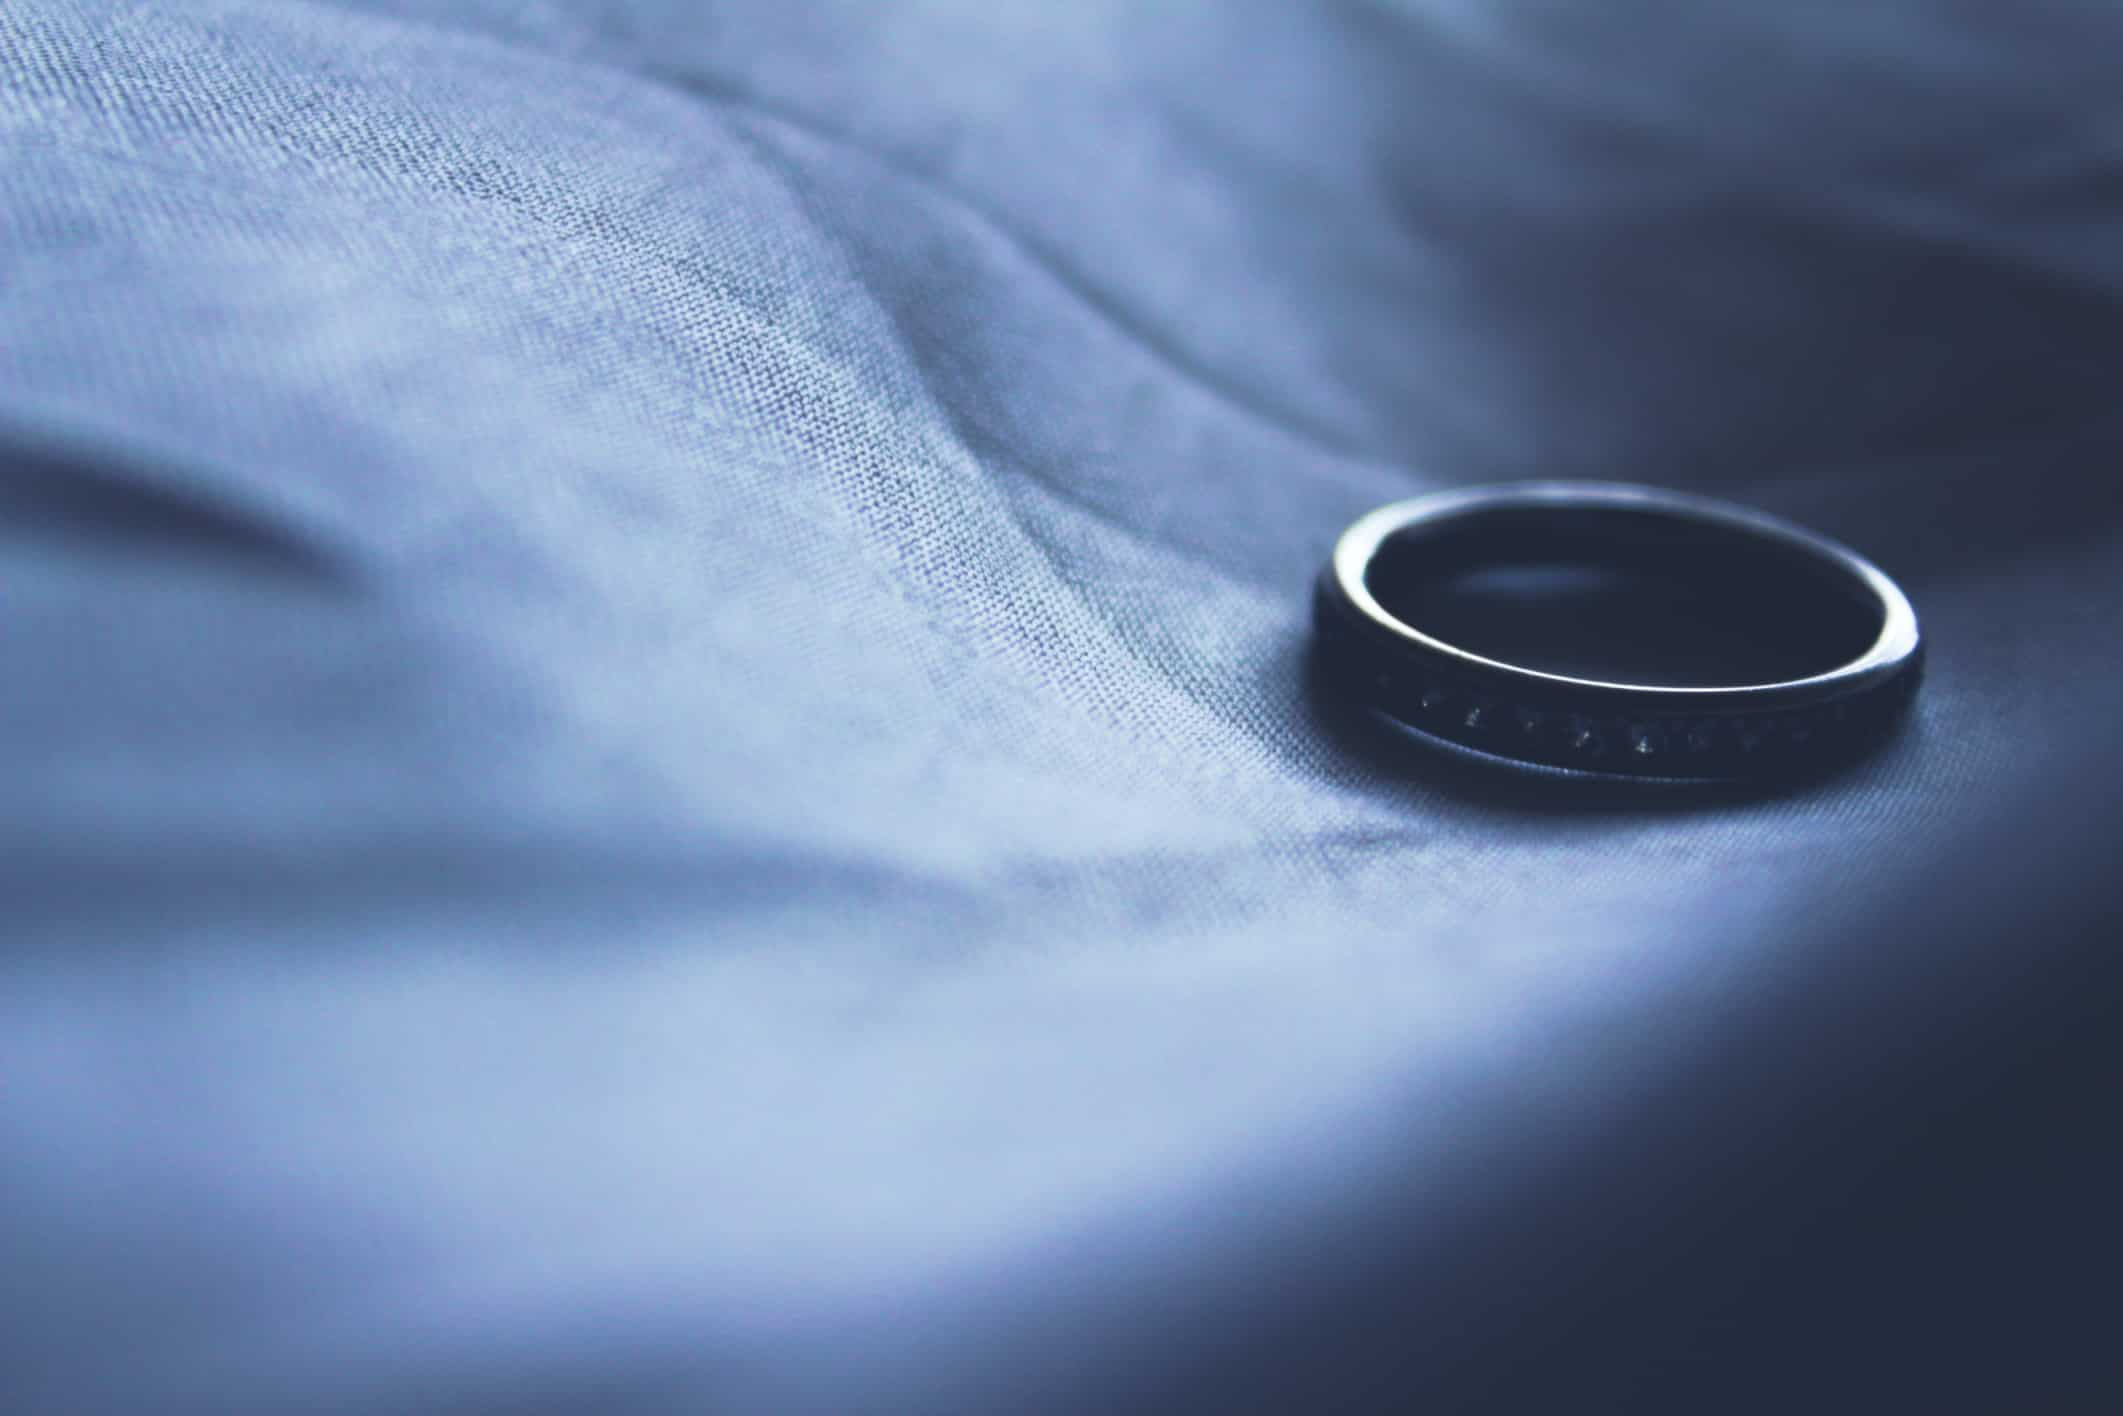 Wedding Ring divorce on grounds of adultery